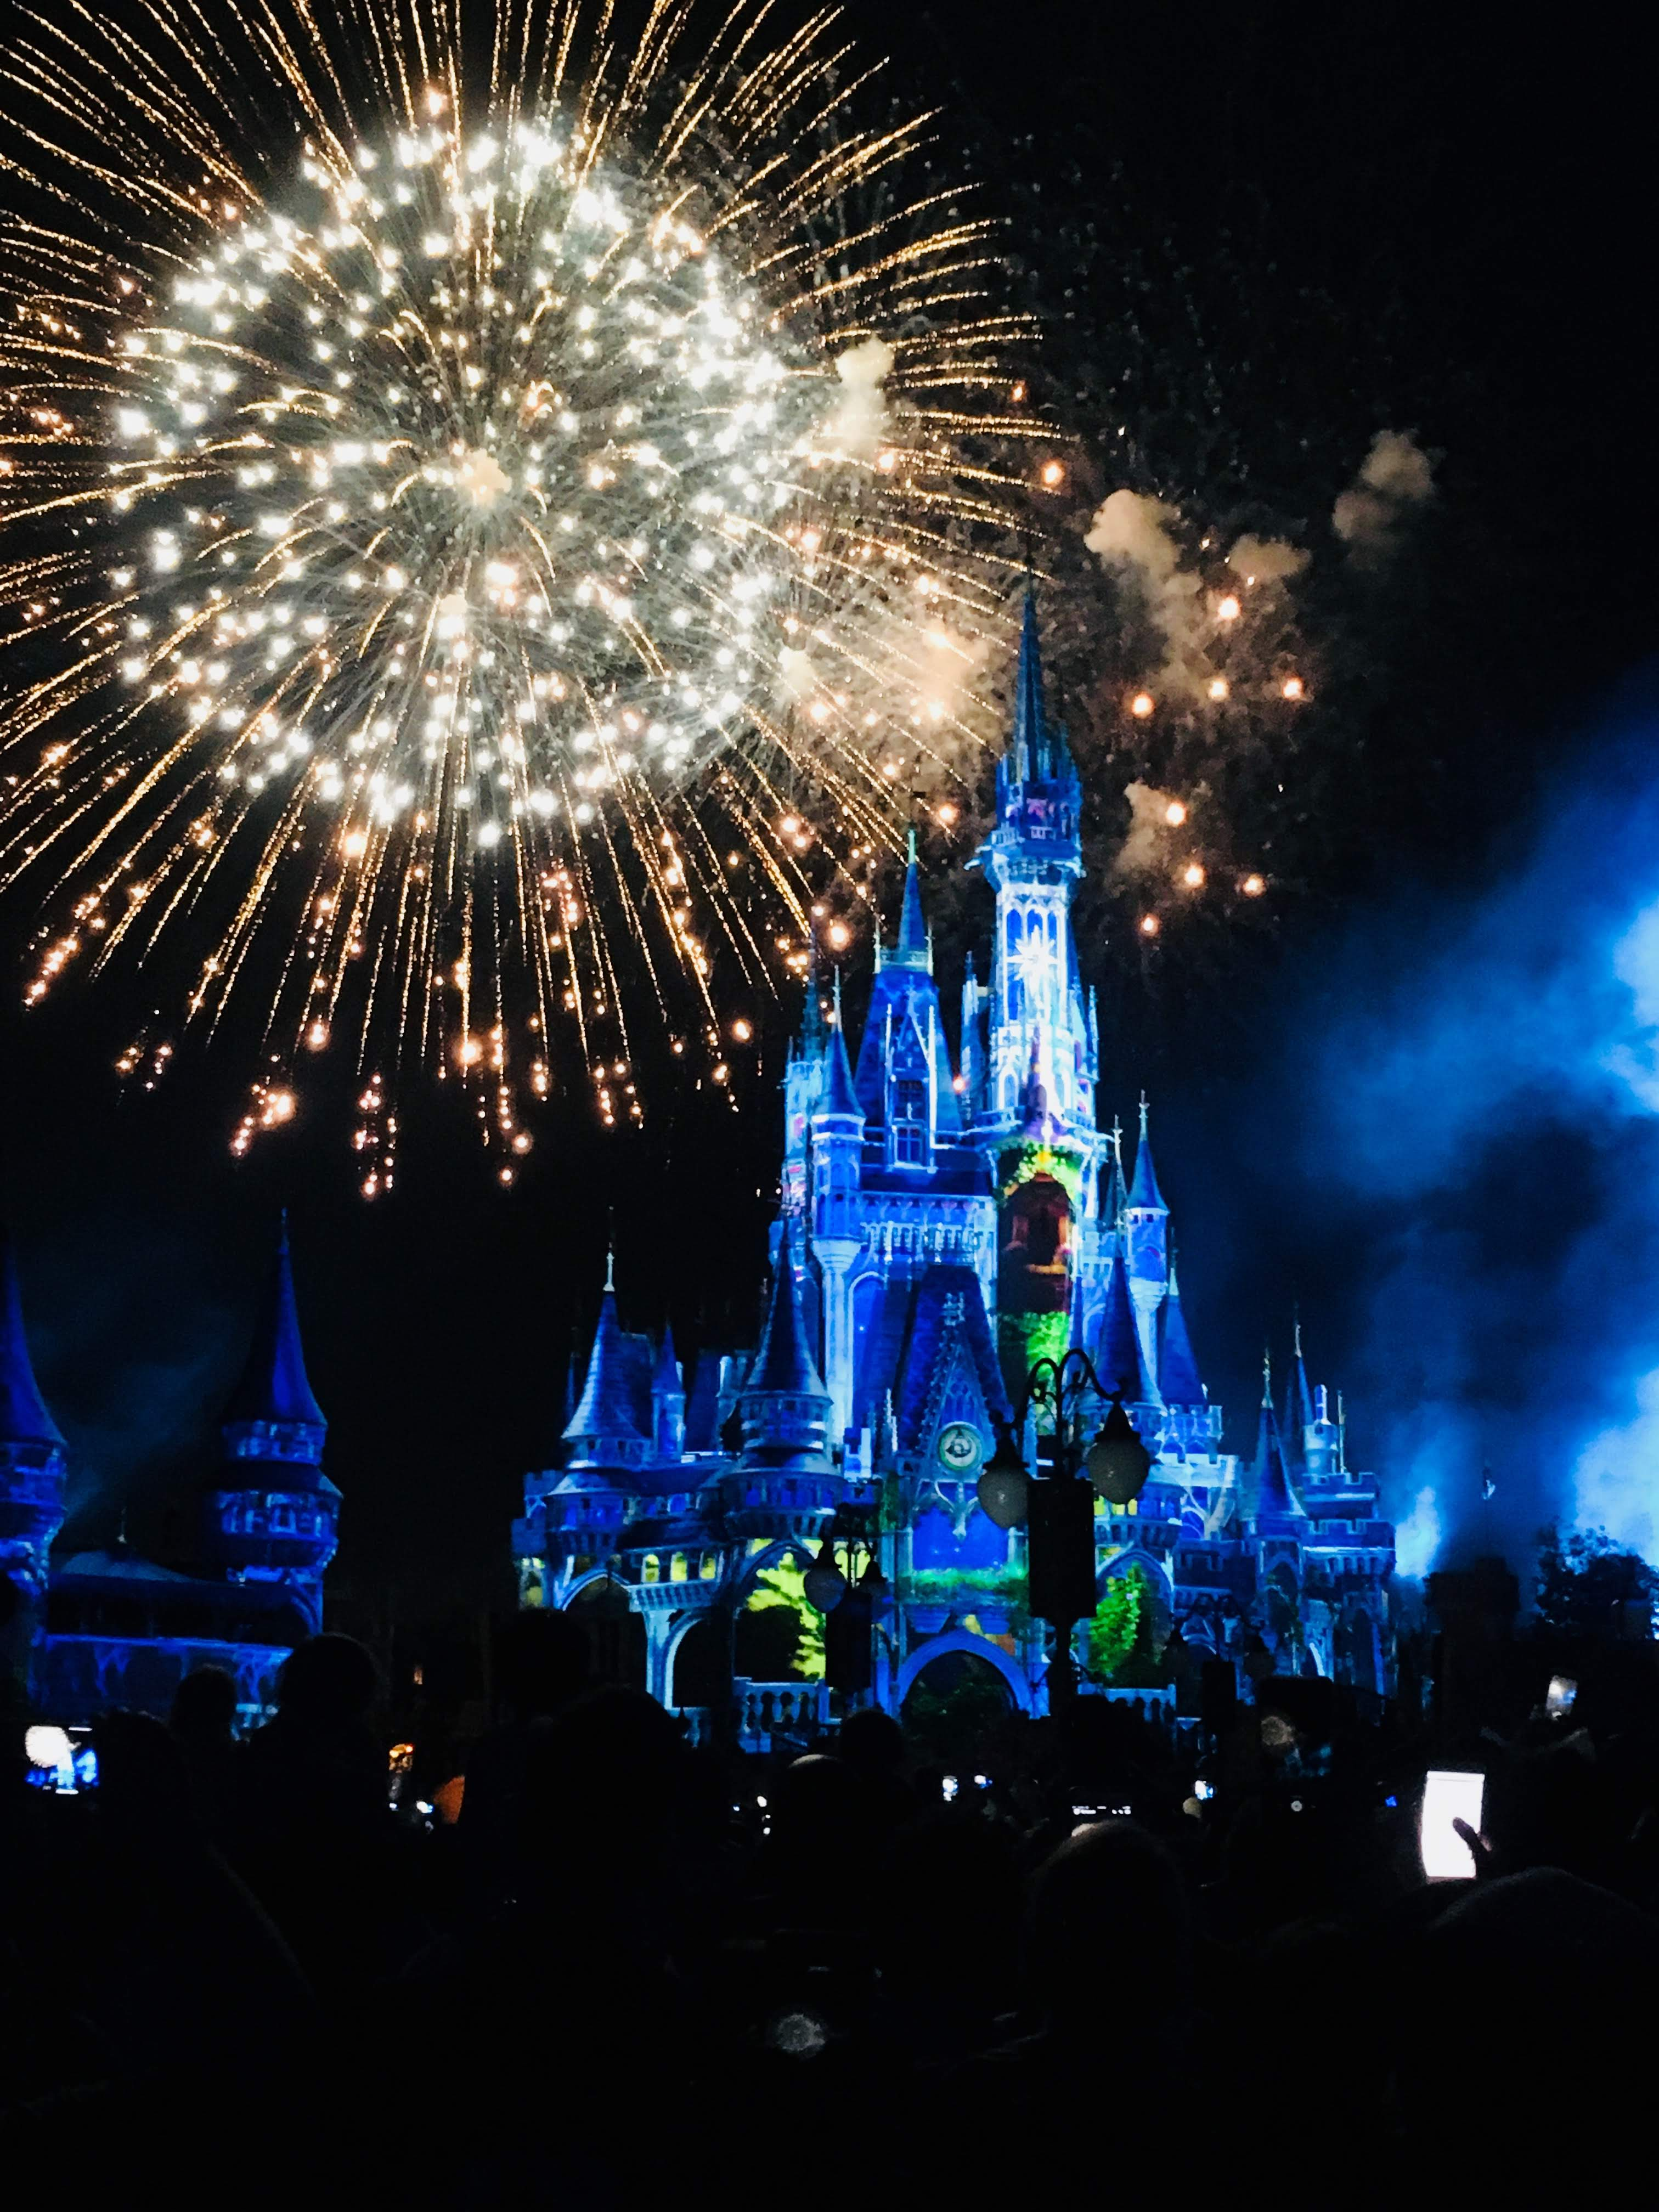 fireworks at the Cinderella Castle at Magic Kingdom